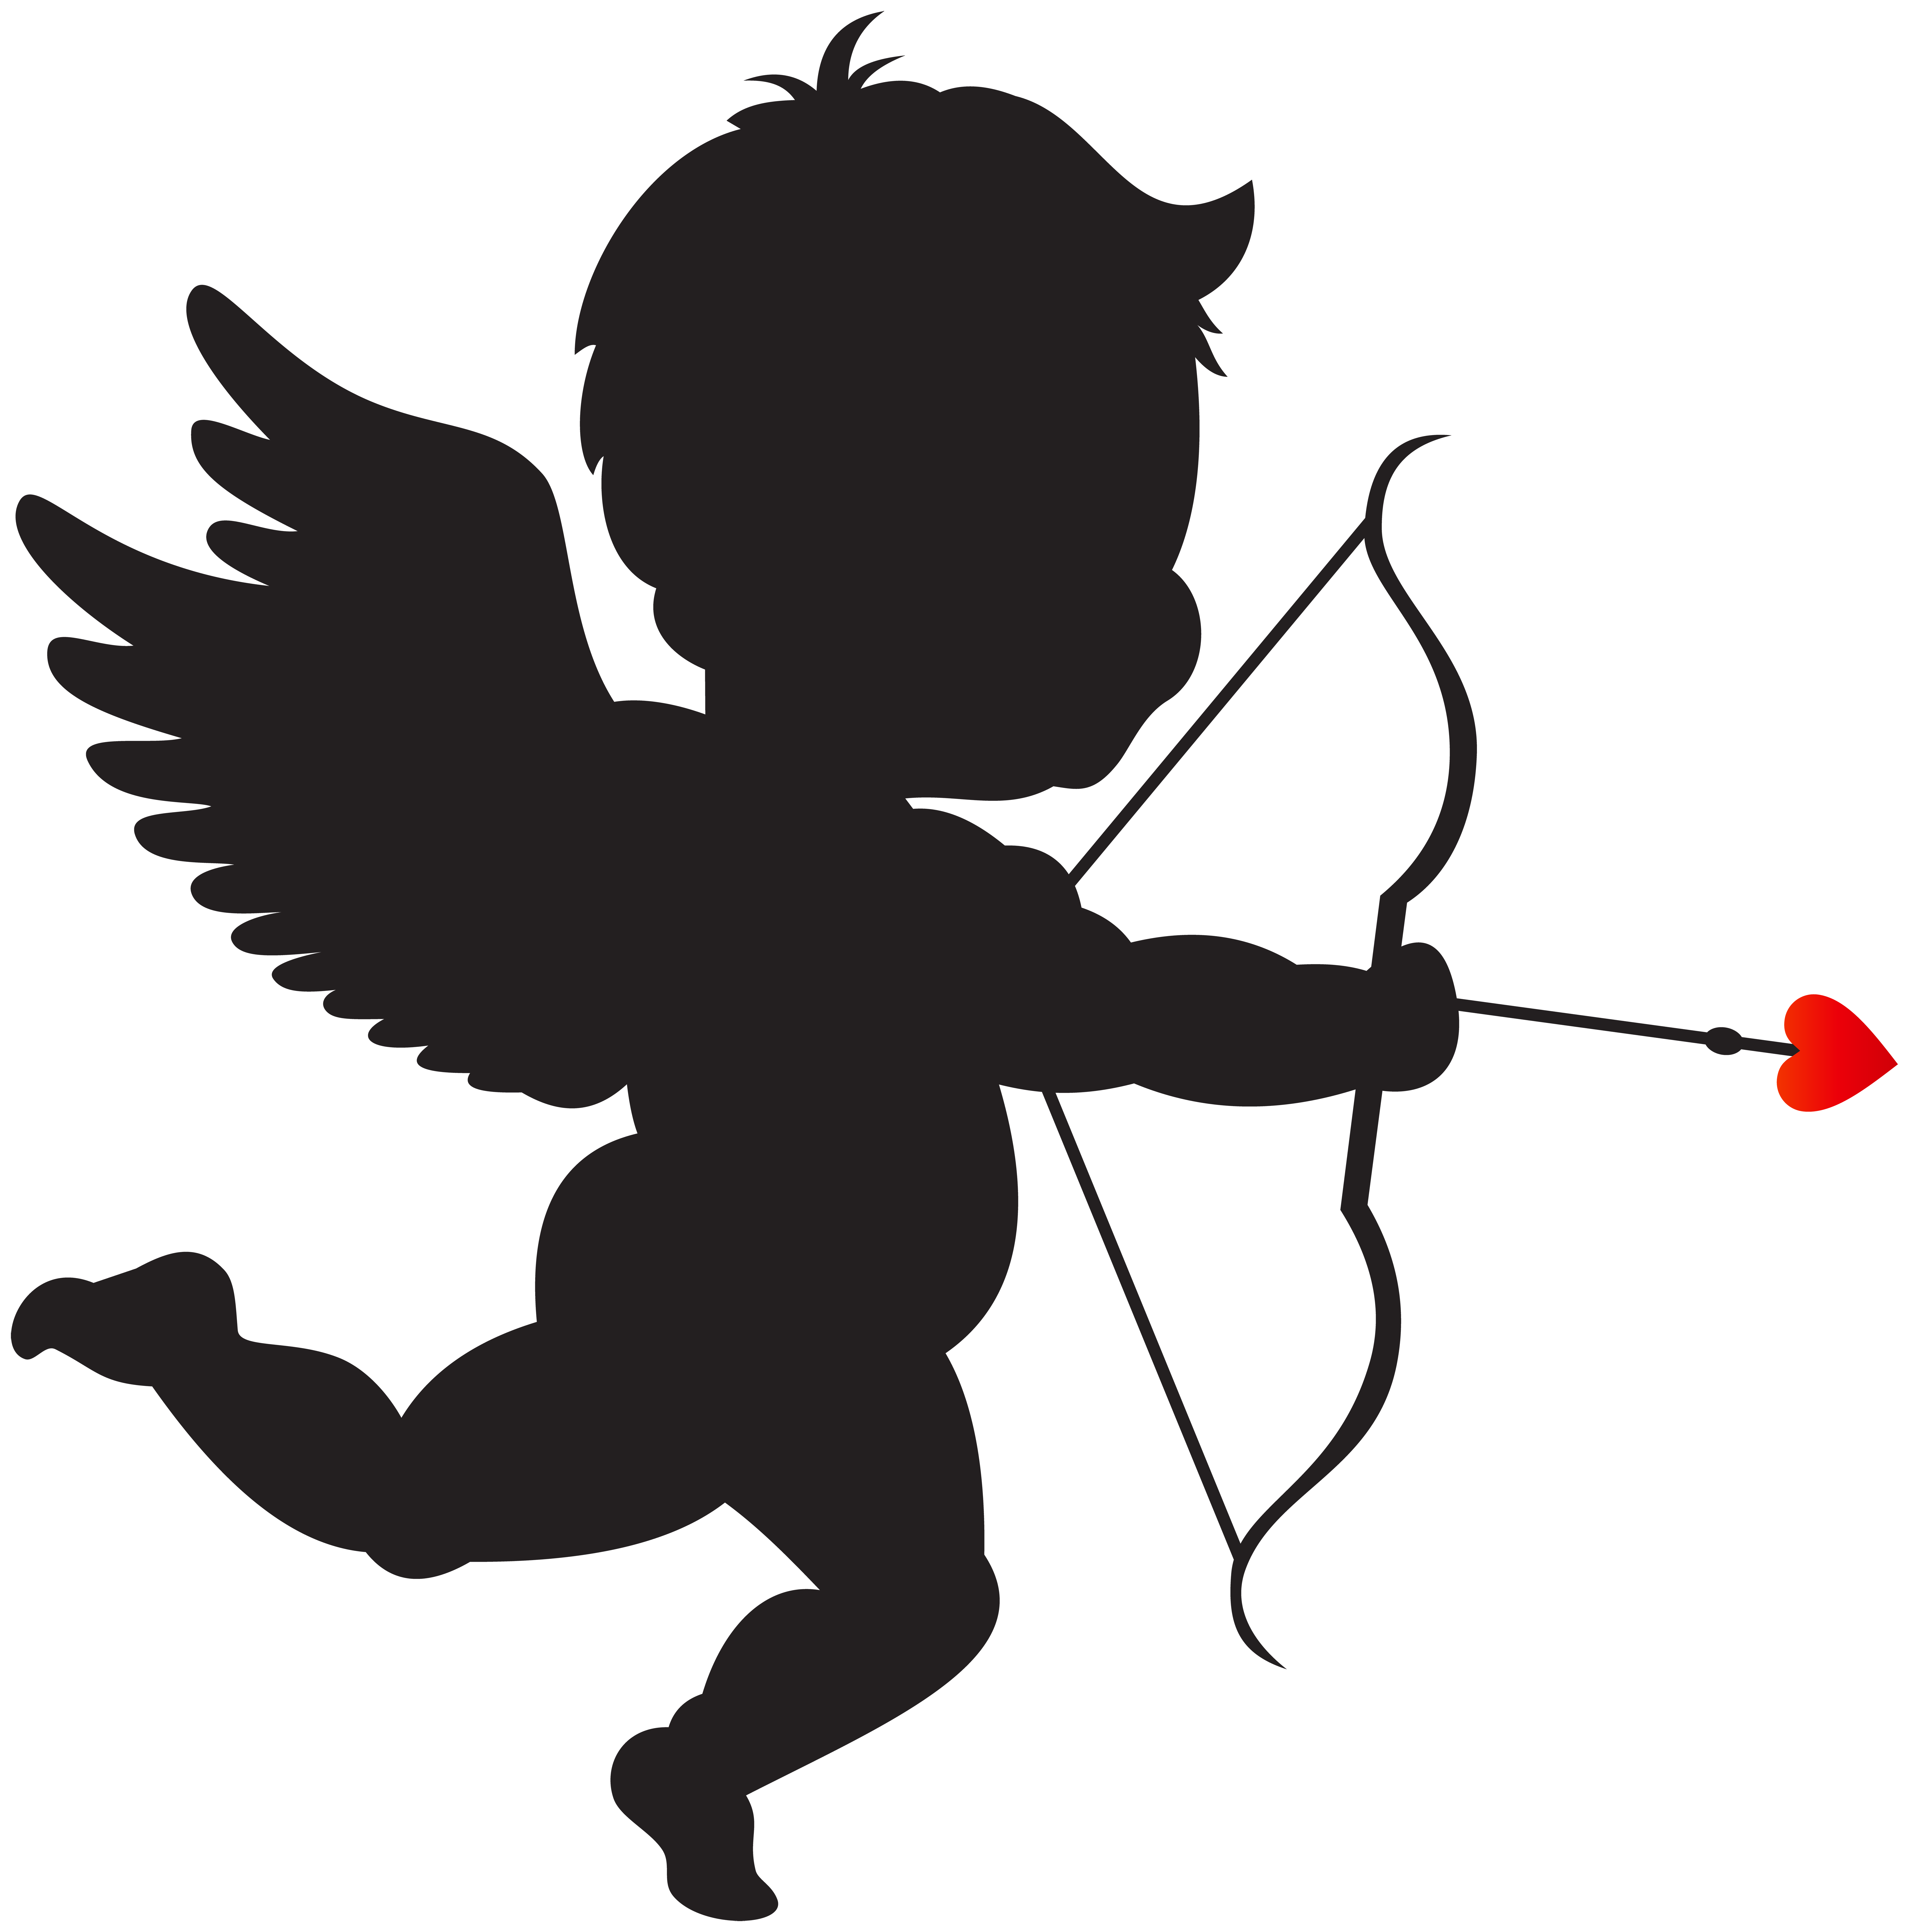 free clipart silhouette at getdrawings com free for personal use rh getdrawings com